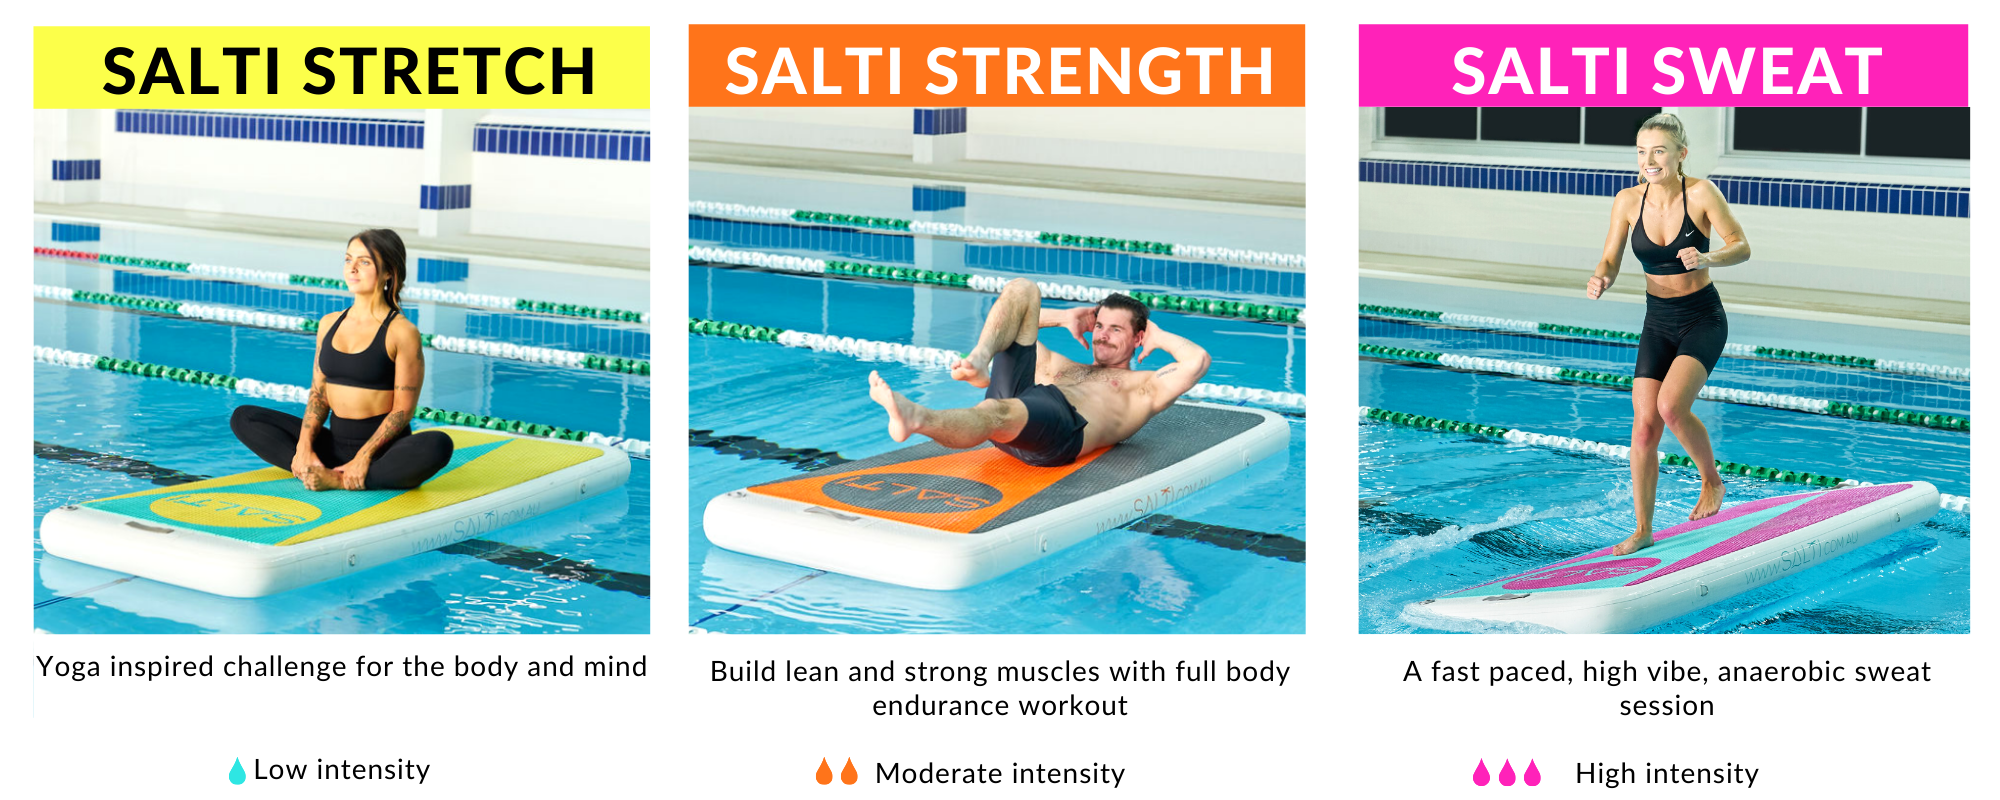 Salti Active - pre choreographed class plans for floating group fitness classes - Yoga inspired Salti Stretch, Salti Strength, Salti Sweat HIIT style